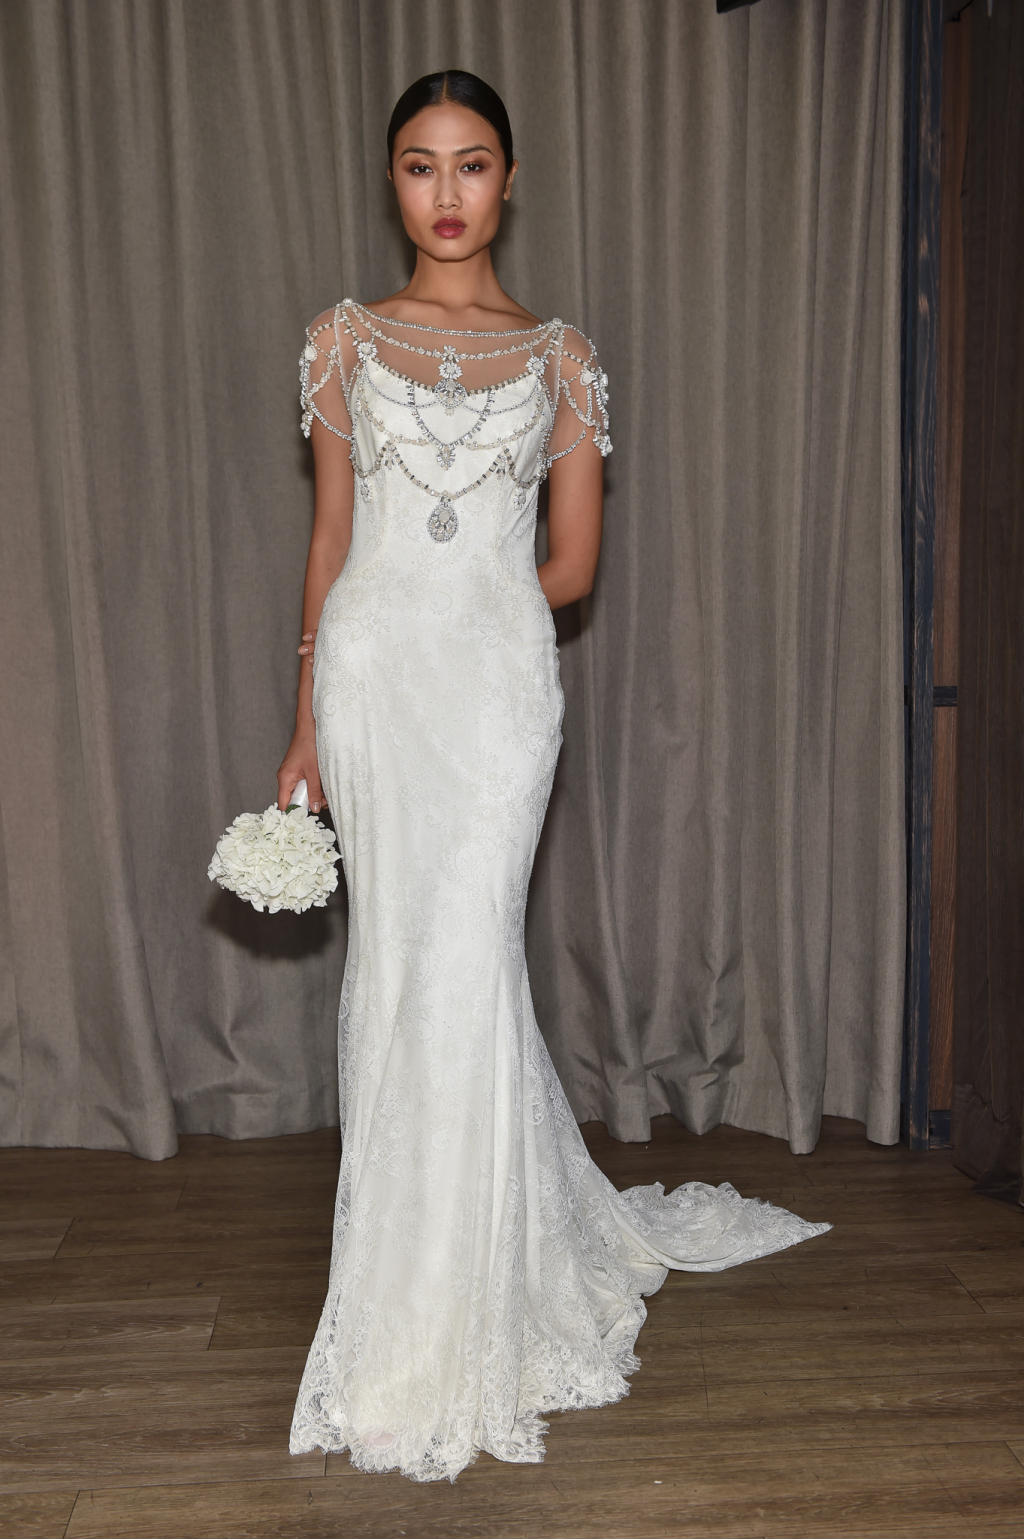 Badgley mischka fall 2016 wedding dress collection for Wedding dress badgley mischka